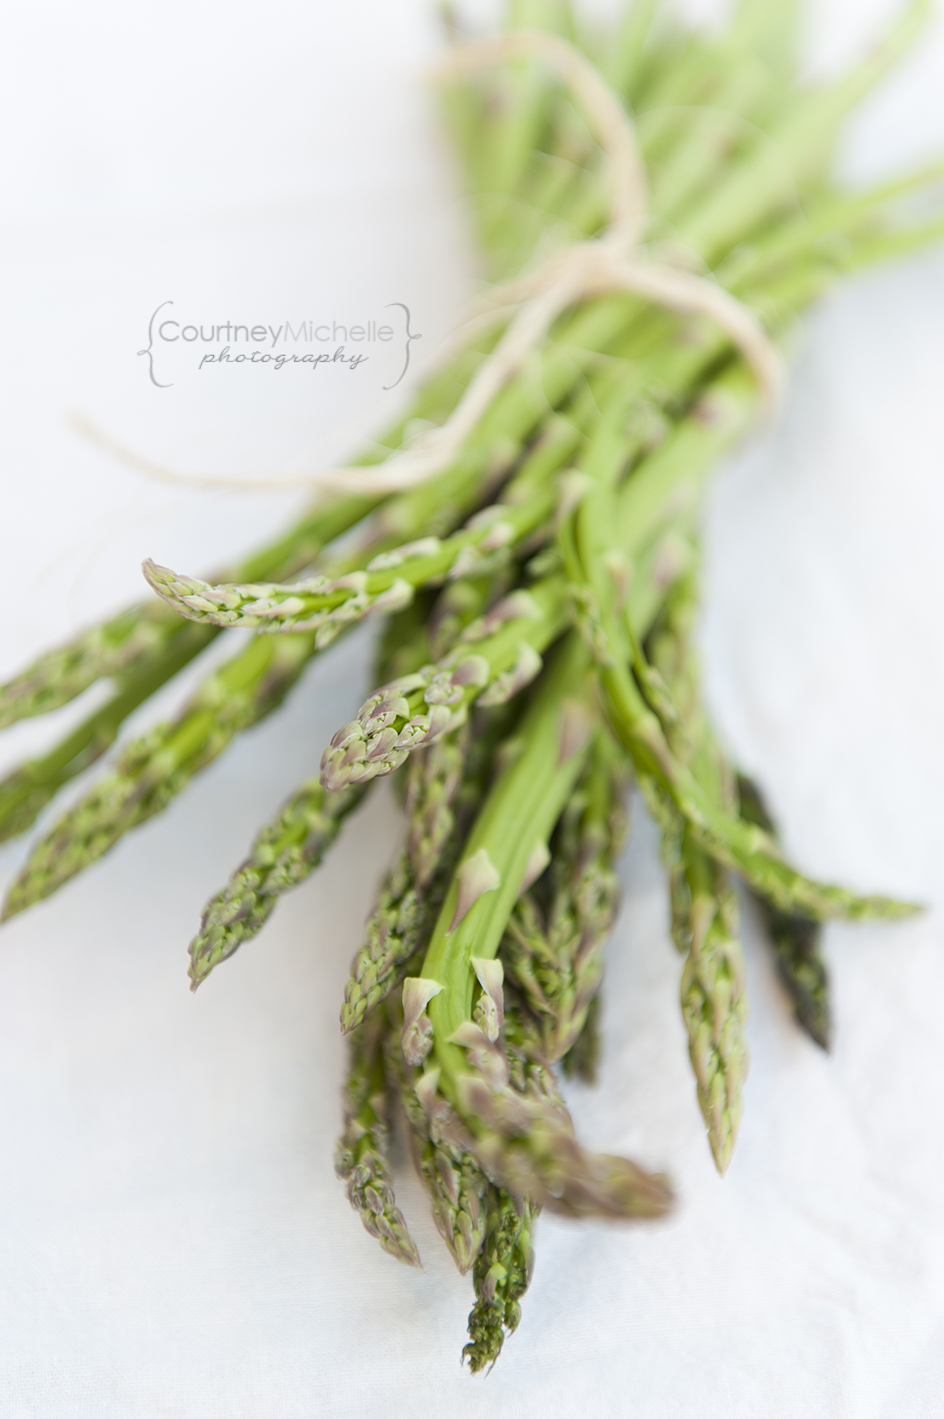 farmers-market-asparagus-chicago-food-lifestyle-photography-by-courtney-laper.jpg